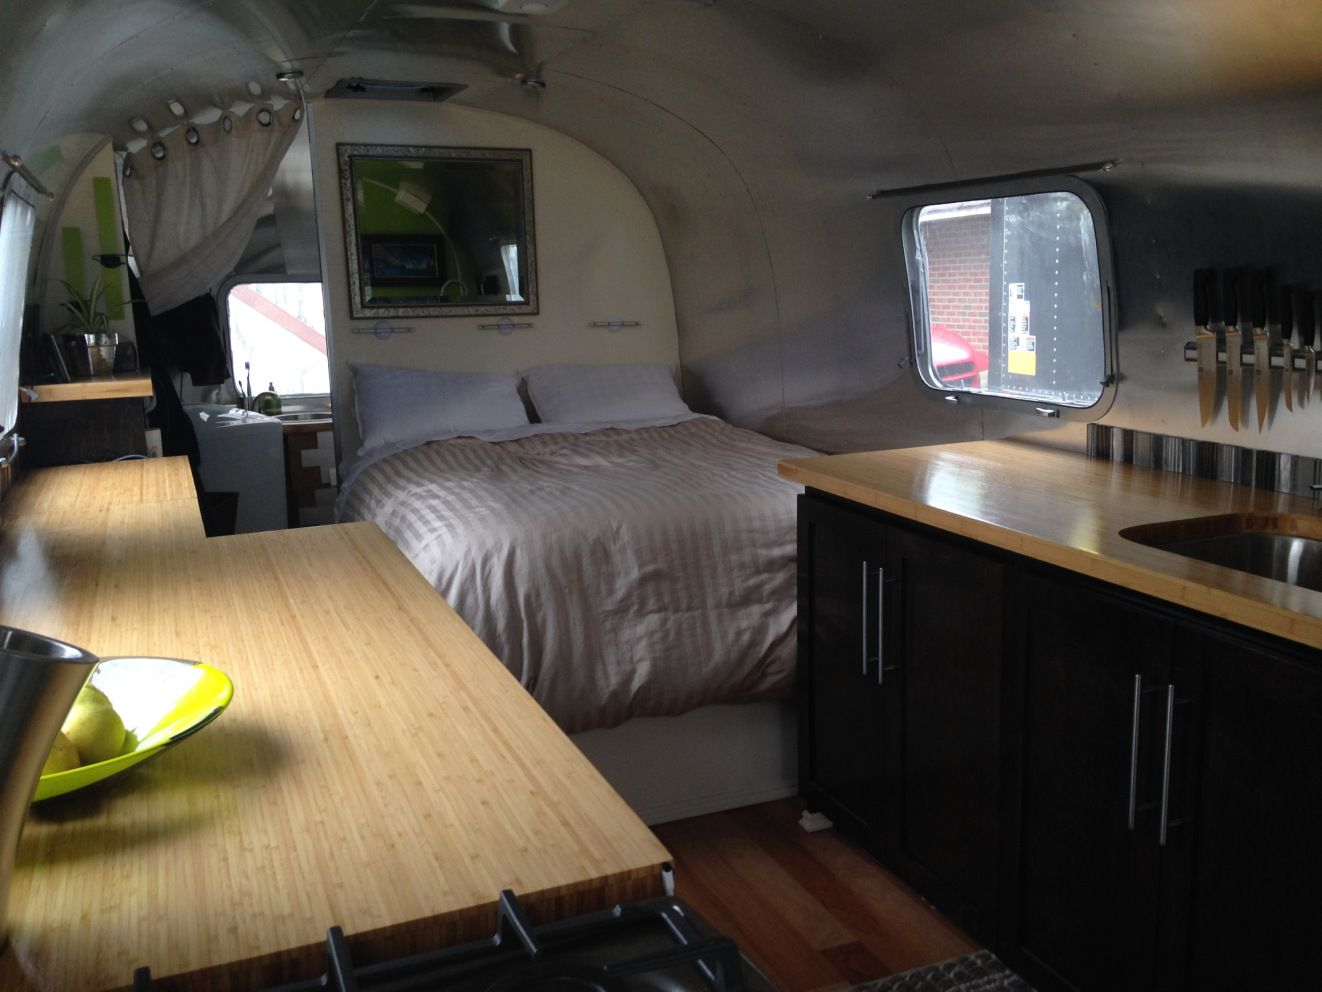 Fully Custom Airstream Luxury Trailer For Sale Soon Airstream For Sale Airstream Interior Airstream Trailers For Sale